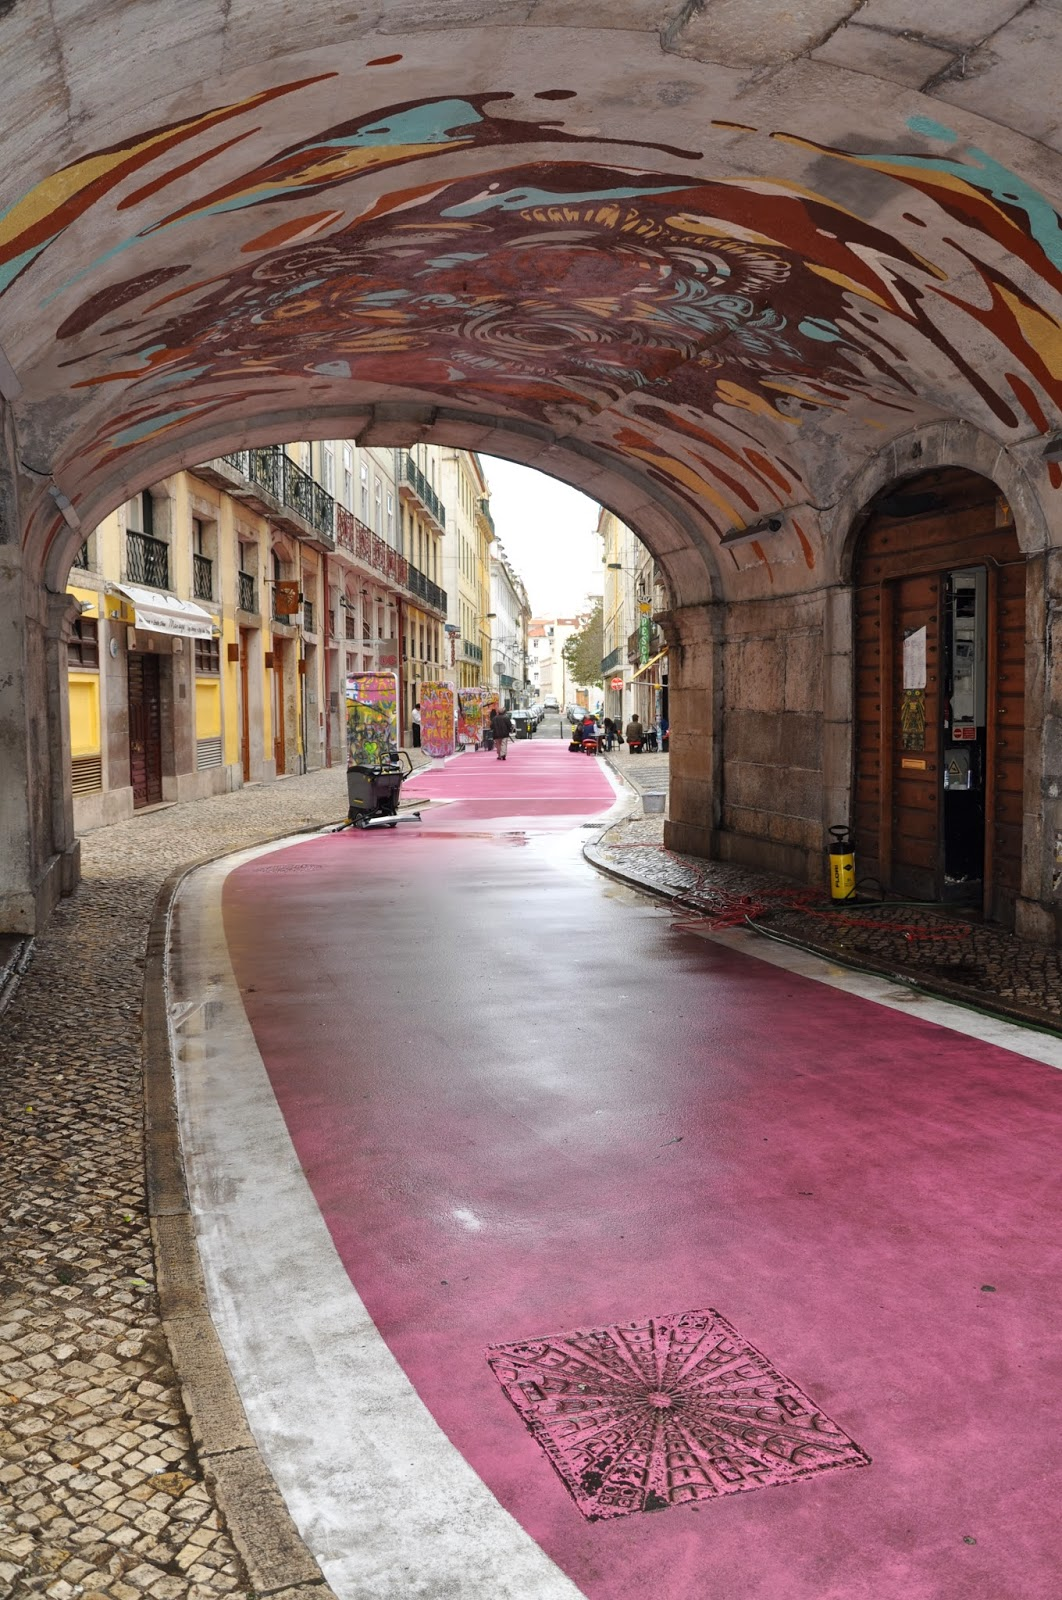 iolanda andrade The pink street in Cais do Sodr area